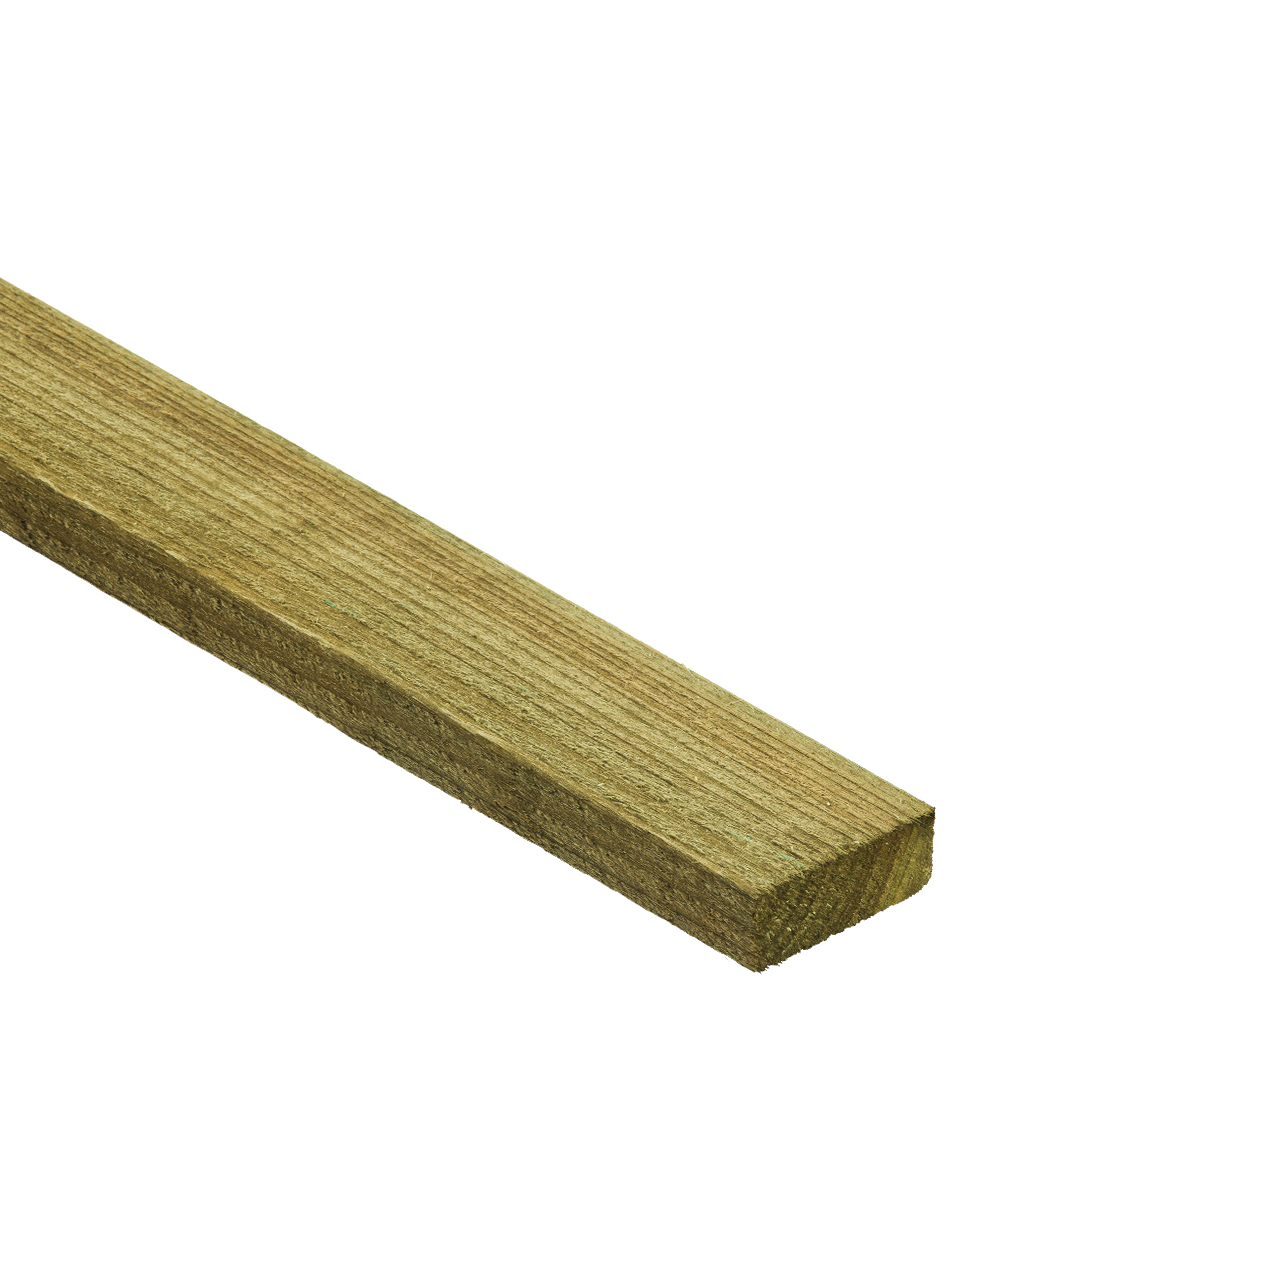 Rough Sawn Carcassing Green Treated 38mm x 75mm image 0